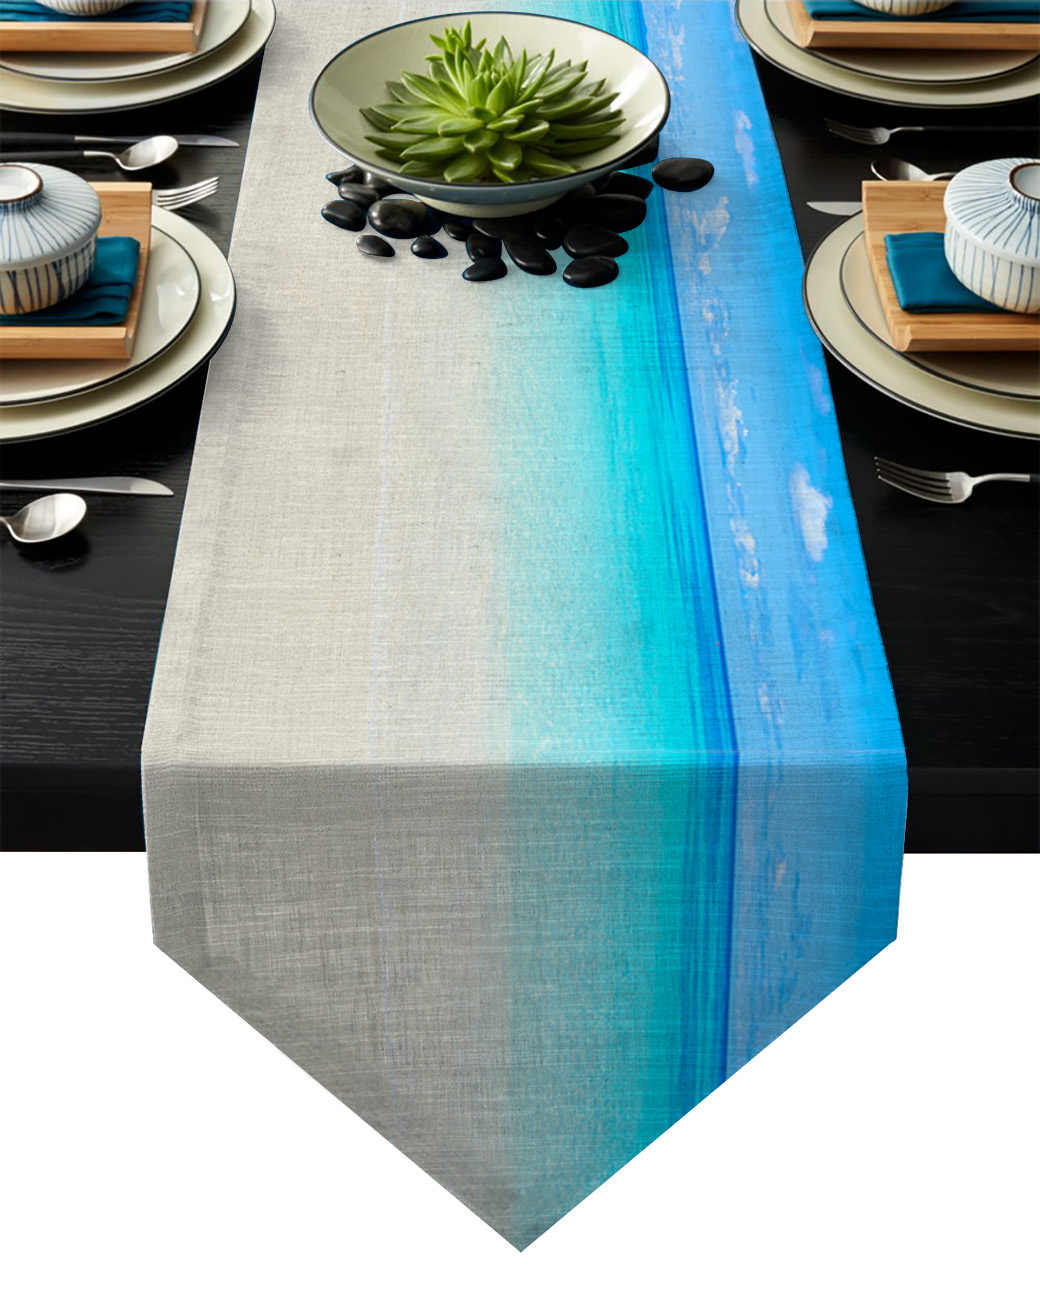 Modern Table Runner Blue Ocean Landscape Print Table Runners For Wedding Party Home Decorations Picnic Dinner Dining Table Cover Table Runners Aliexpress